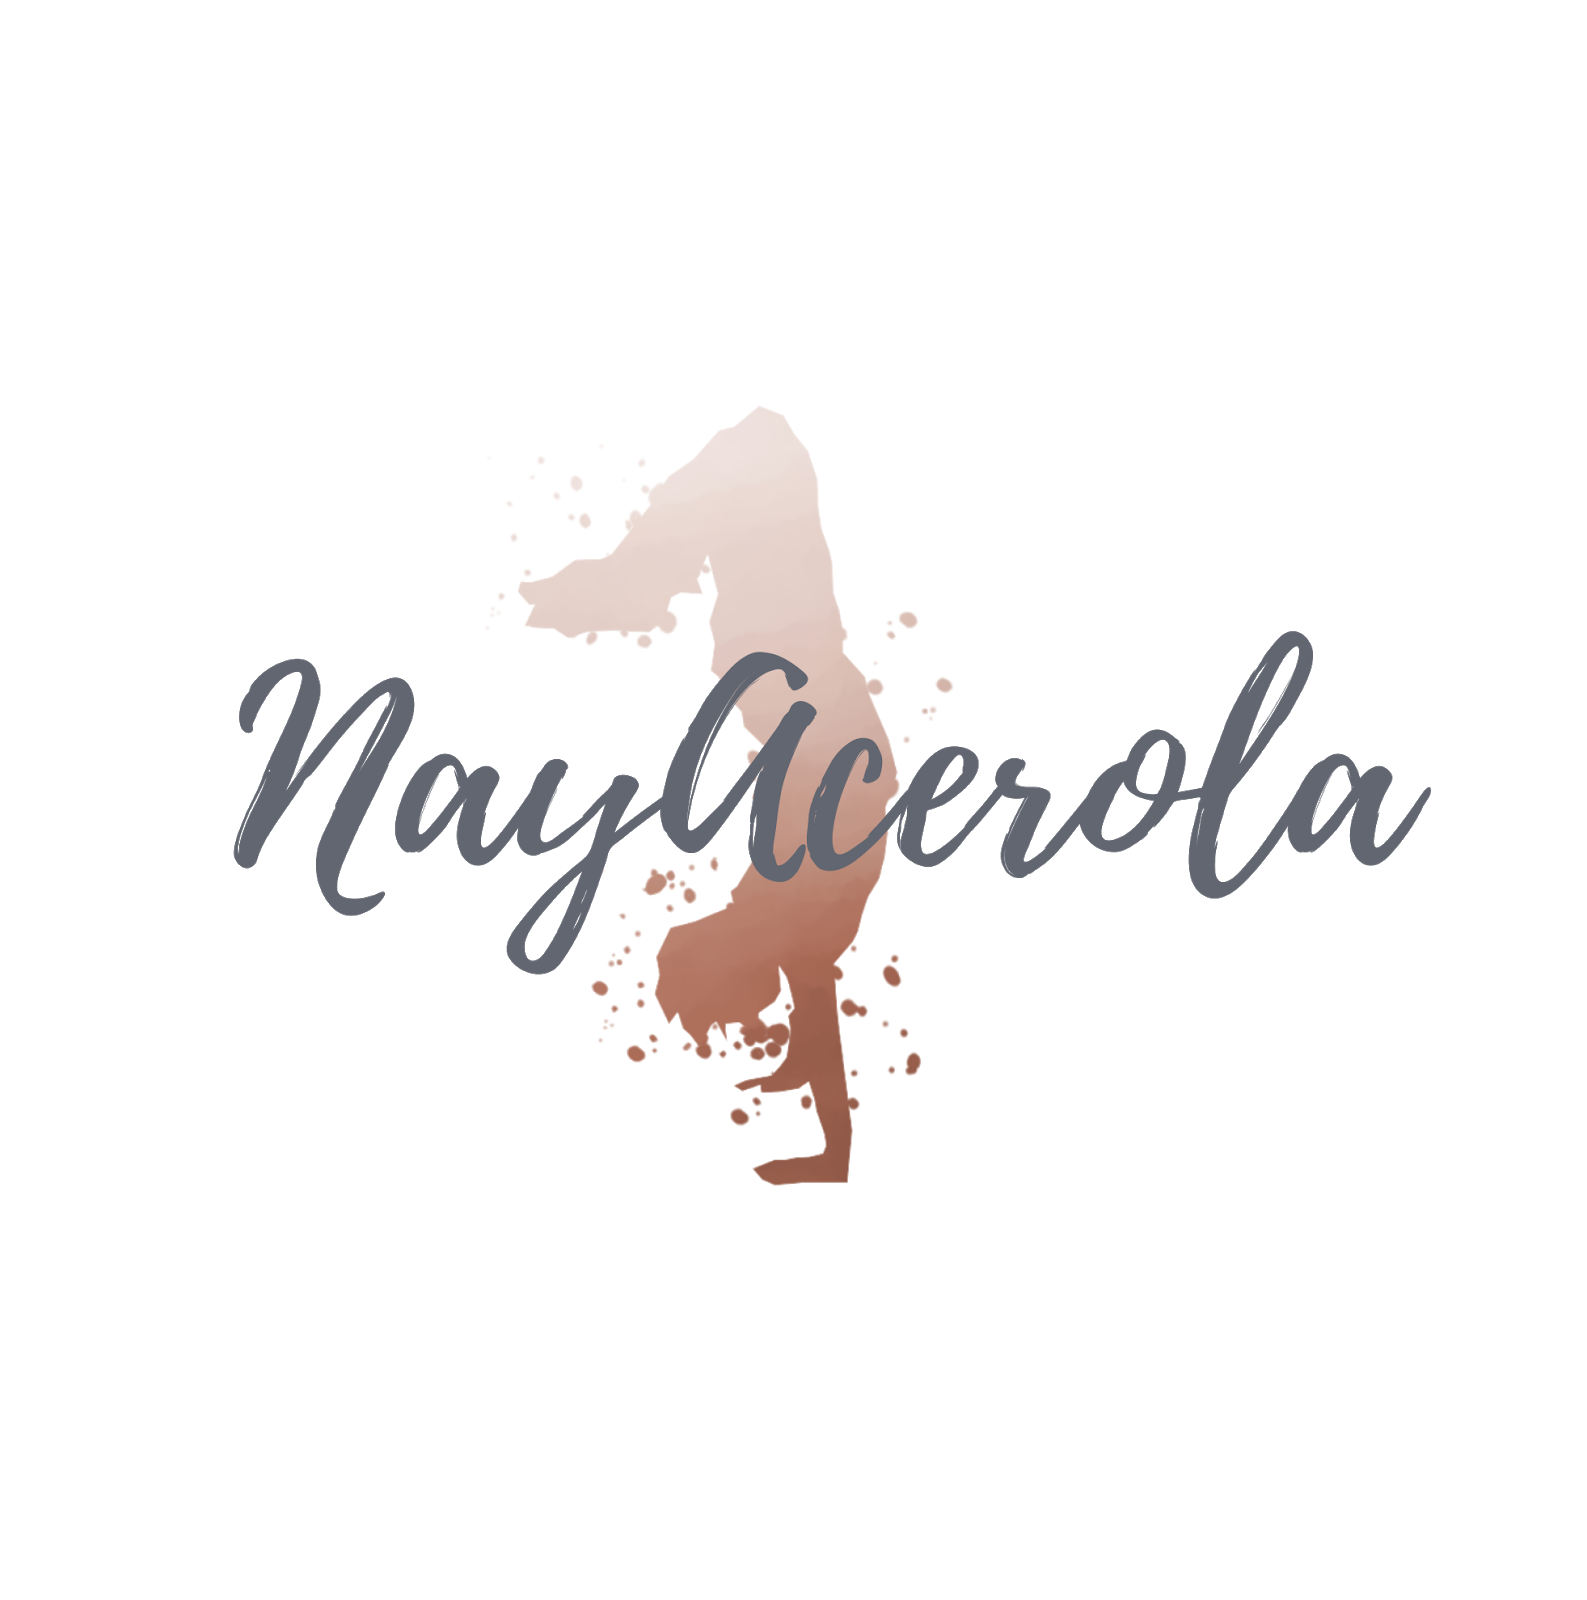 NayAcerola, Fitness for beguinners and beauty blog